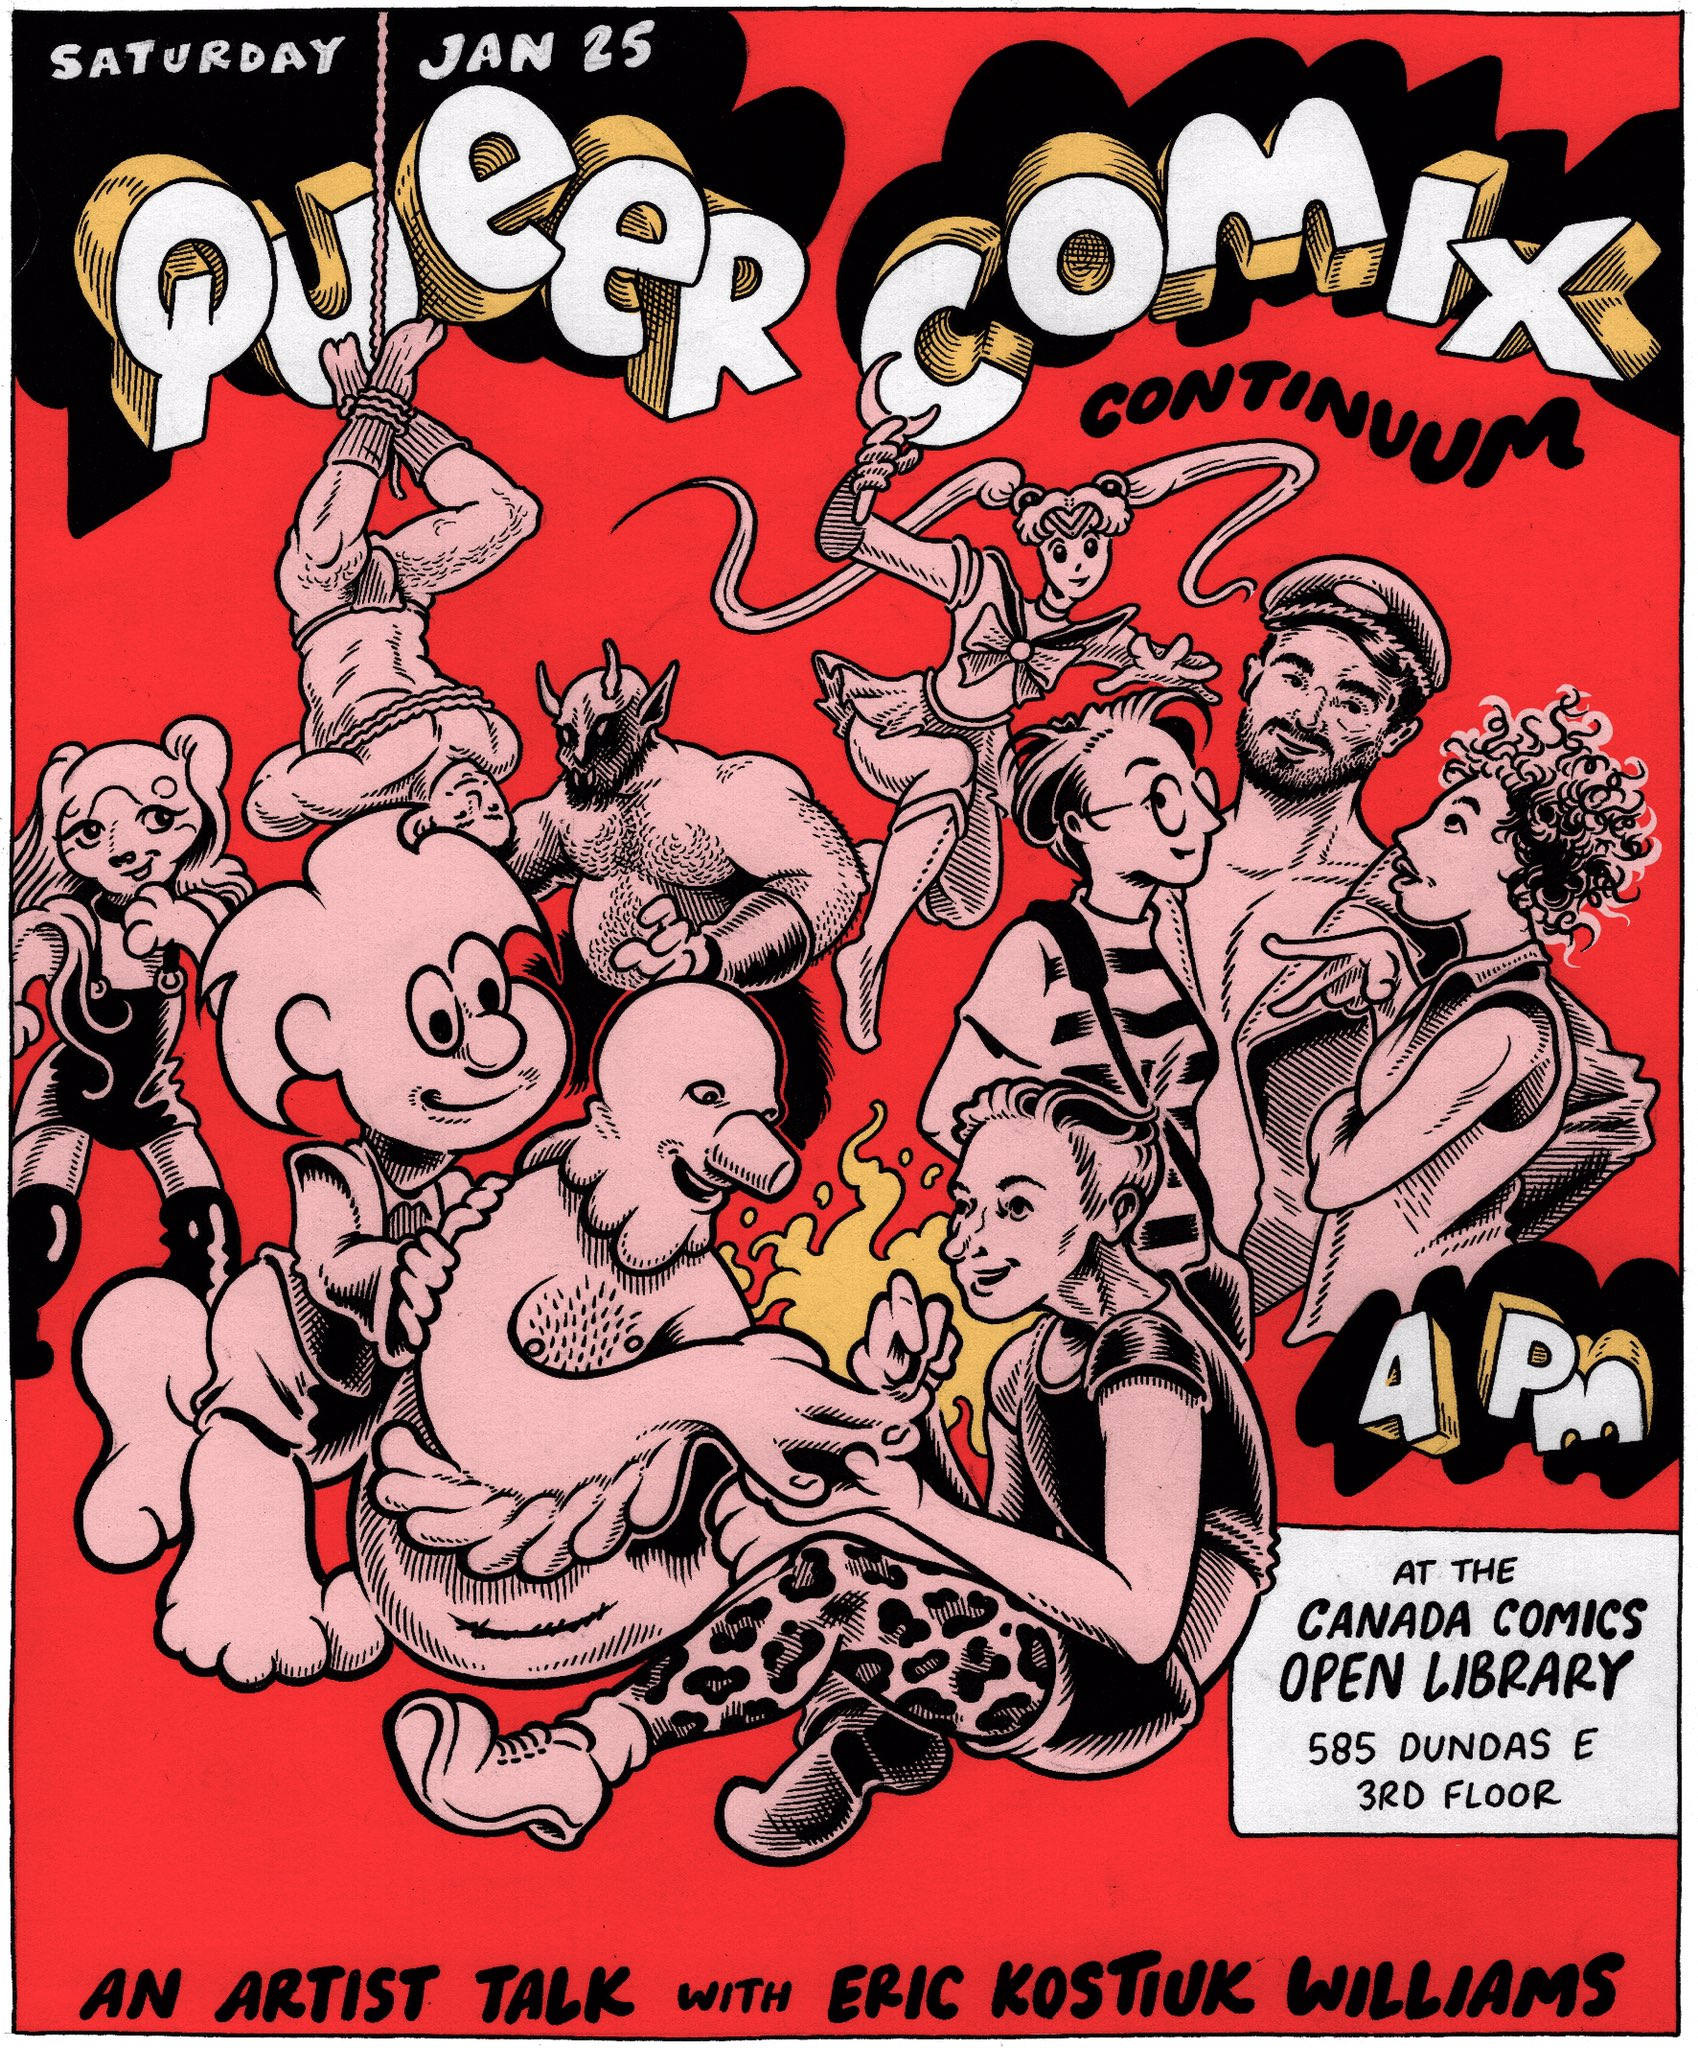 Queer Comix Continuum: an artist talk with Eric Kostiuk WIlliams